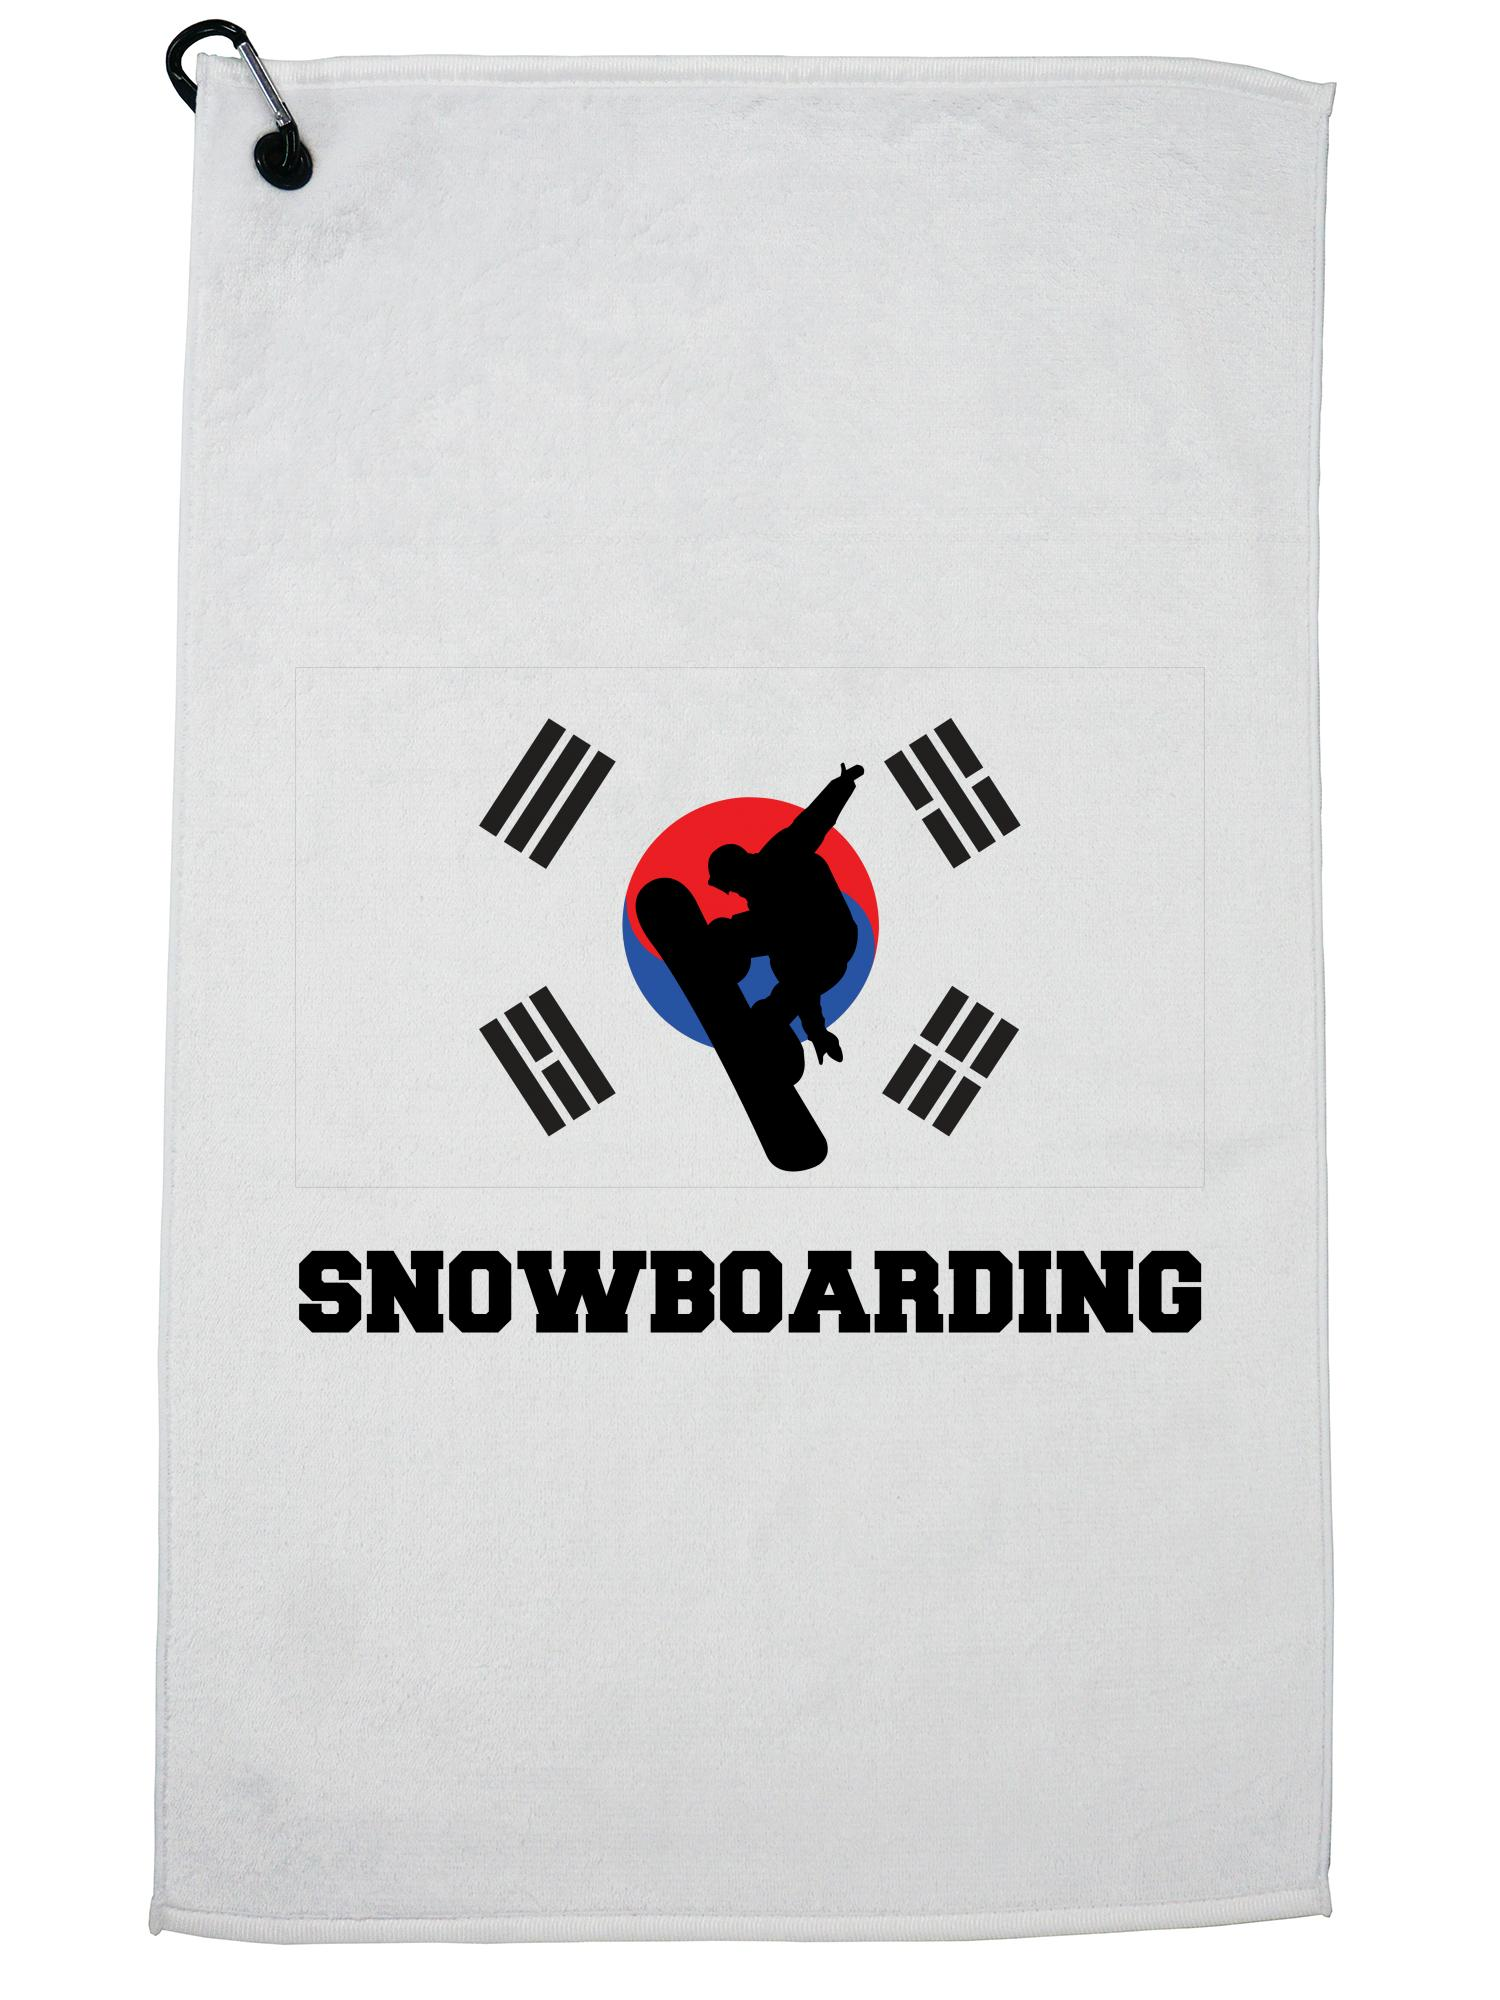 South Korea Olympic Snowboarding Flag Silhouette Golf Towel with Carabiner Clip by Hollywood Thread